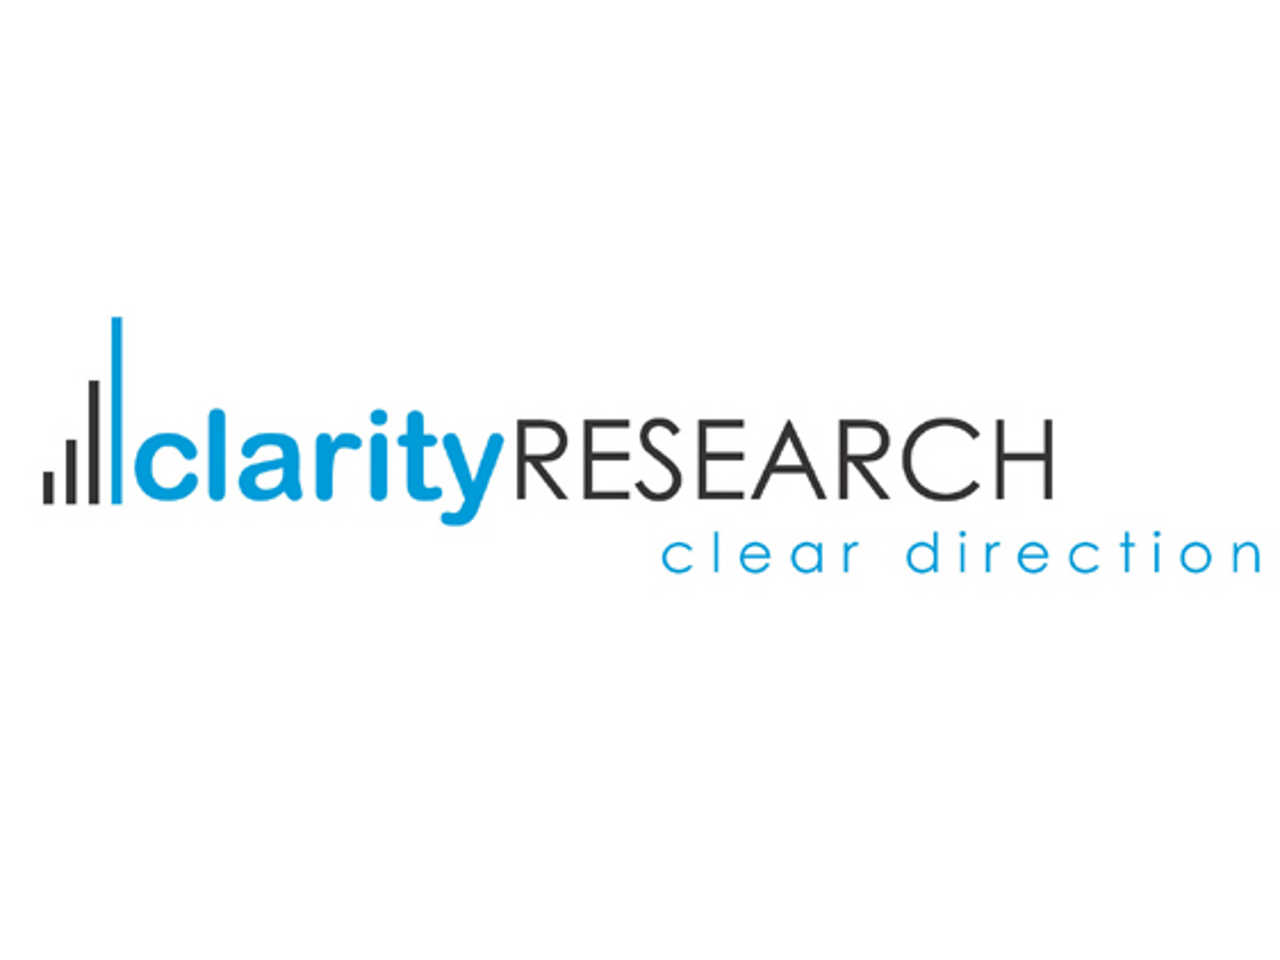 2014 clarity research seeking owners of atvs and utvs for clarity research a powersports product research company clarityresearch net is conducting research on behalf of a major powersports manufacturer